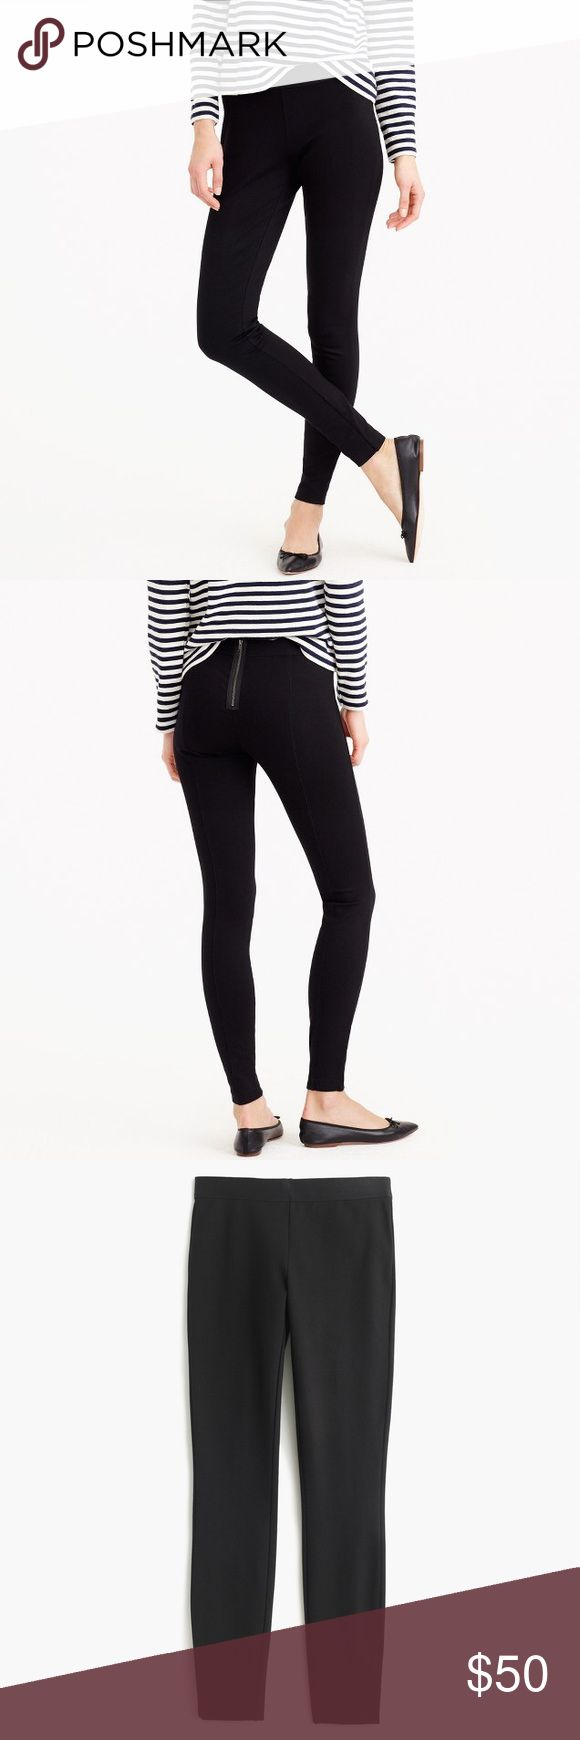 """J Crew Black Exposed Zipper Pixie Pants When we're stumped on what to wear, we start with these pants. Like a legging but more structured, they're made from a stretchy holds-you-in fabric and look good on everyone. Fitted. Elastic waist with back zip. Tapers at ankle. 29"""" inseam. Bundle 2+ items for a discount. J. Crew Pants Leggings"""